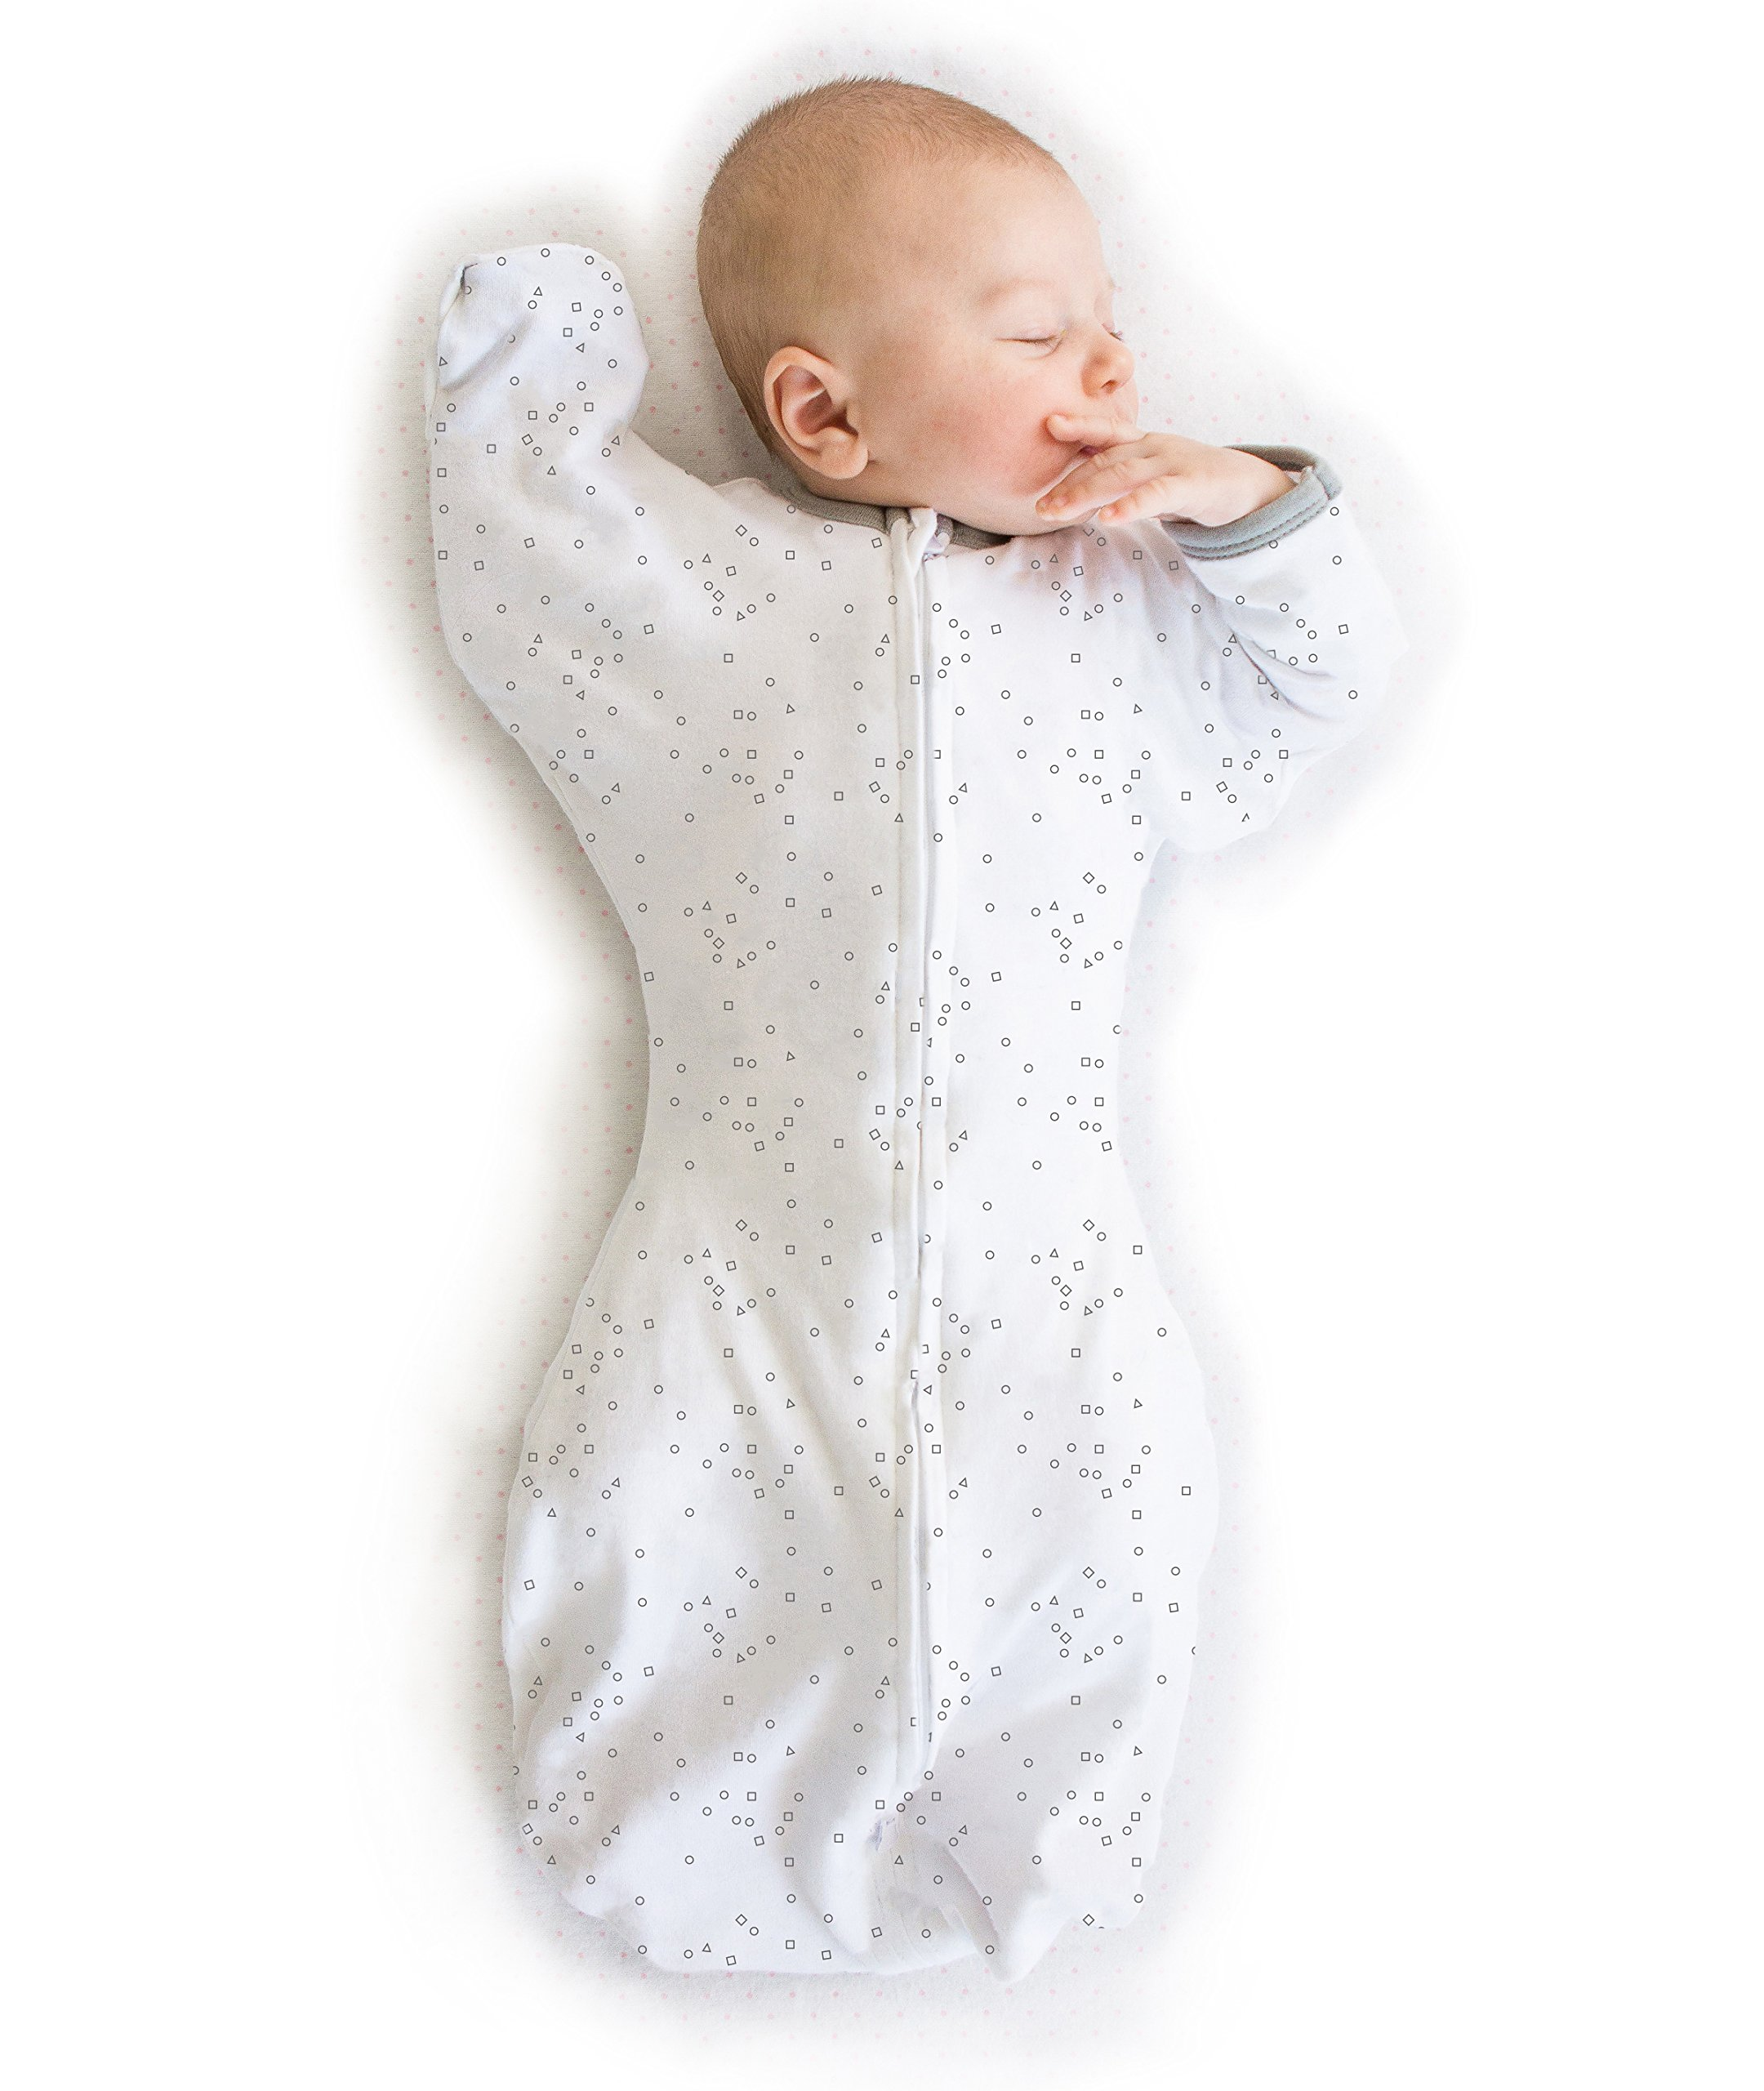 Amazing Baby Swaddle Sack with Arms Up Mitten Cuffs, Confetti, Sterling, Small, 0-3 Months